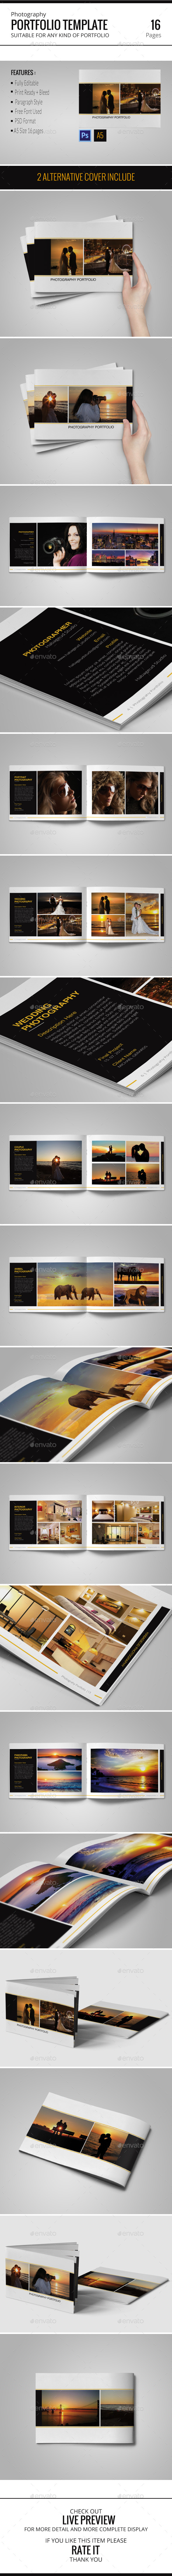 GraphicRiver Photography Portfolio Template 10525894